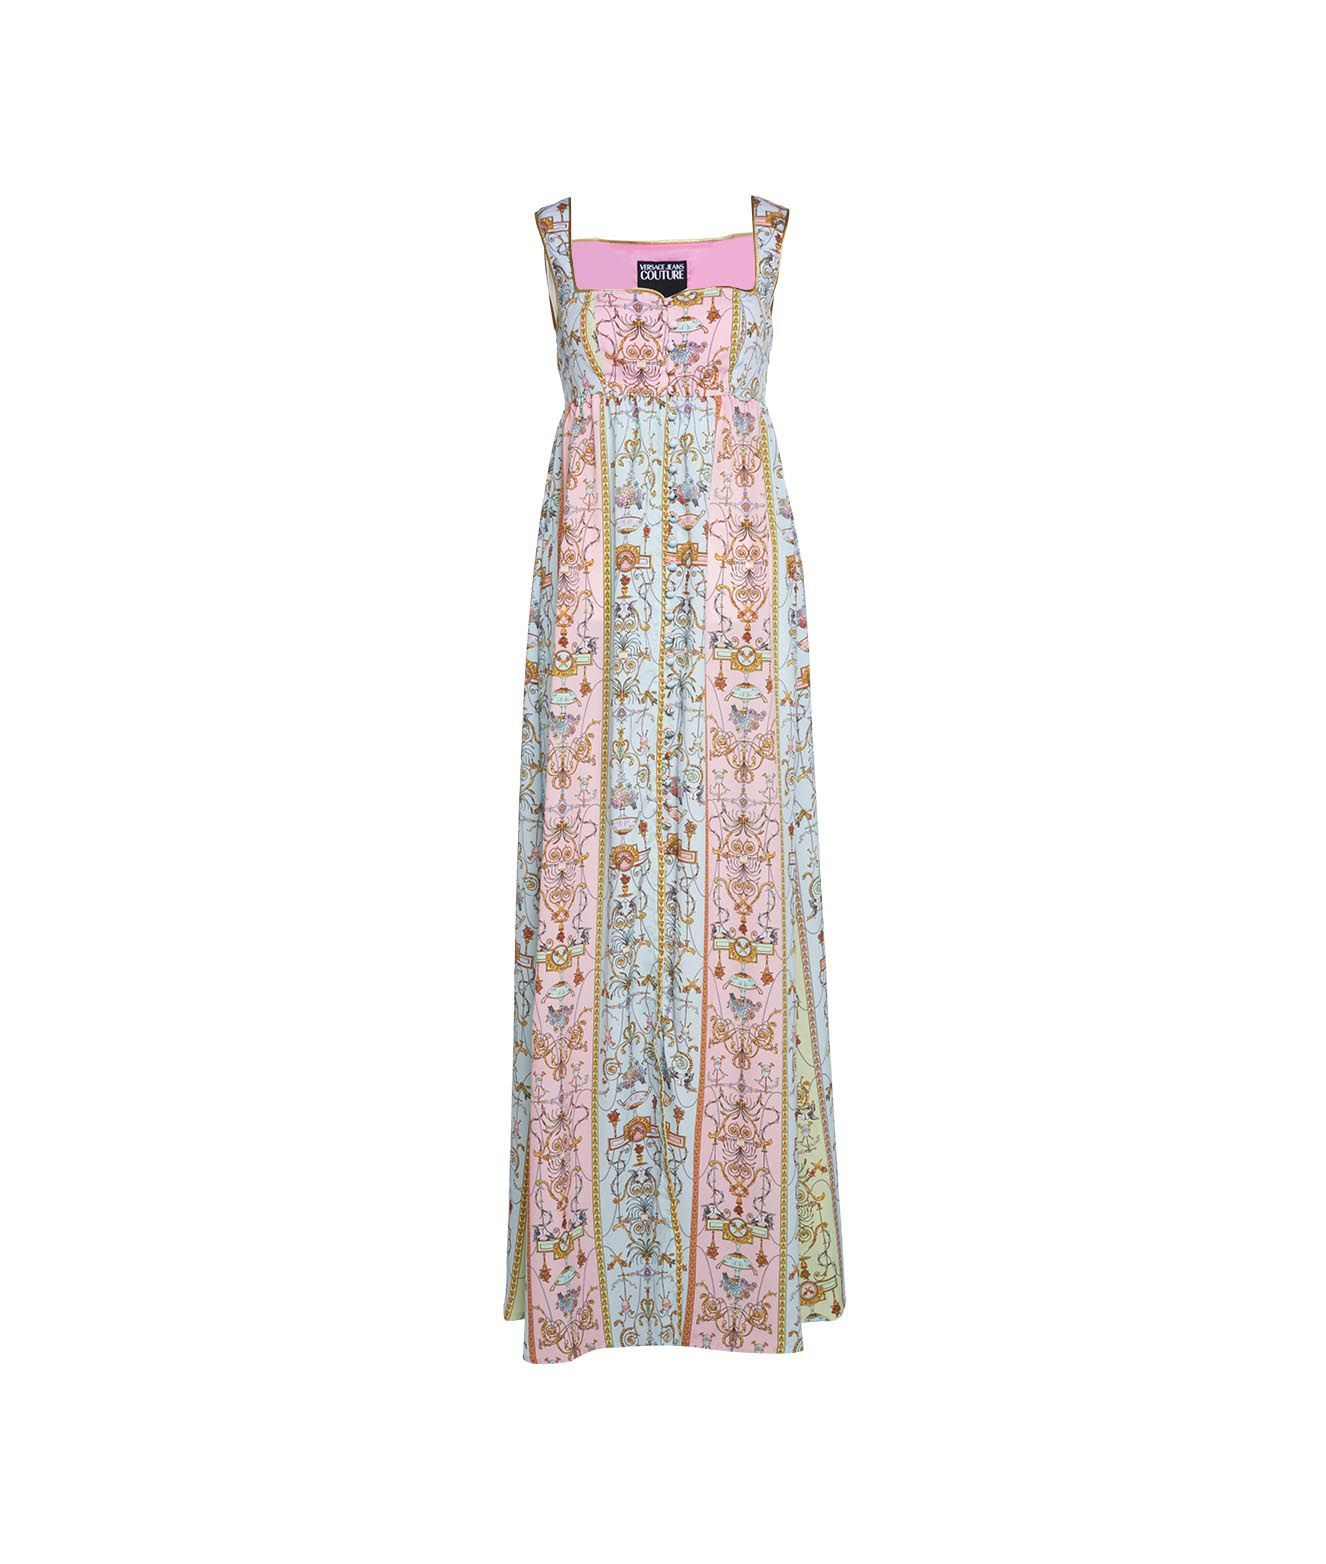 Versace Linings VERSACE WOMEN'S HWA434S099111N87 MULTICOLOR OTHER MATERIALS DRESS